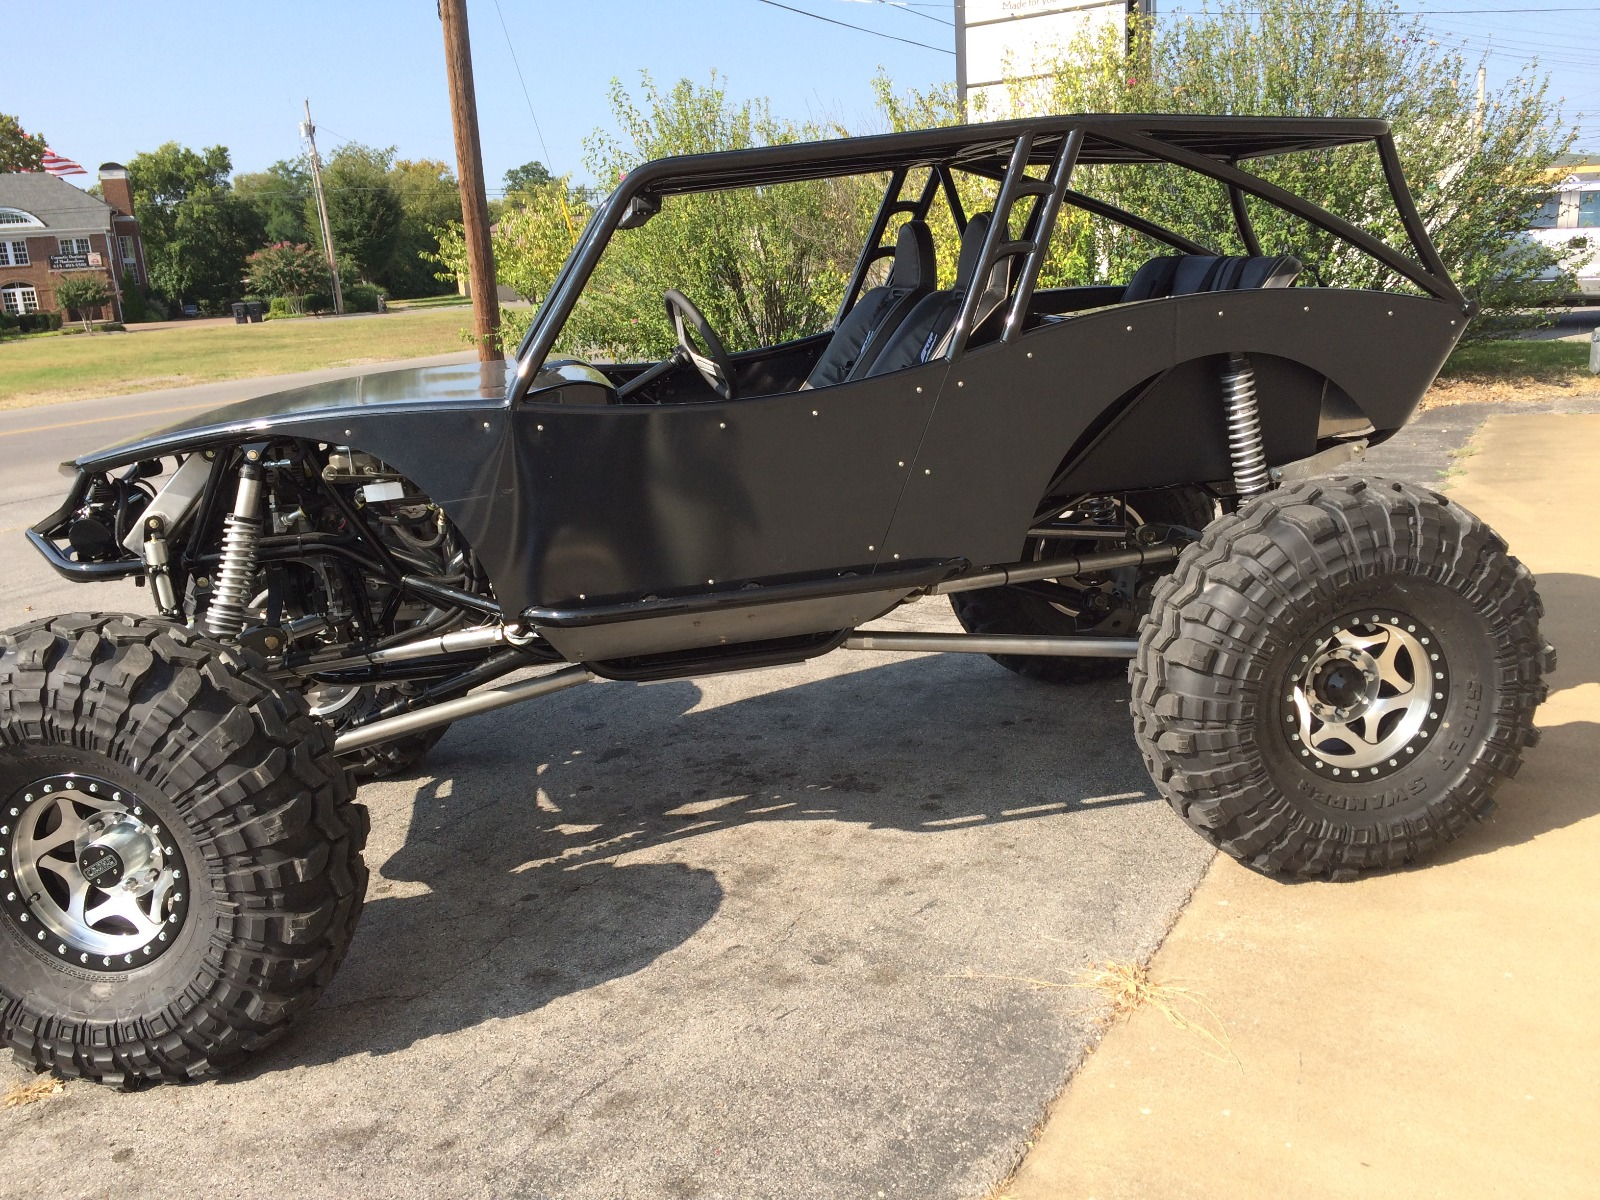 Revolution 4 Seat Rock Crawler Chassis Buggy 6